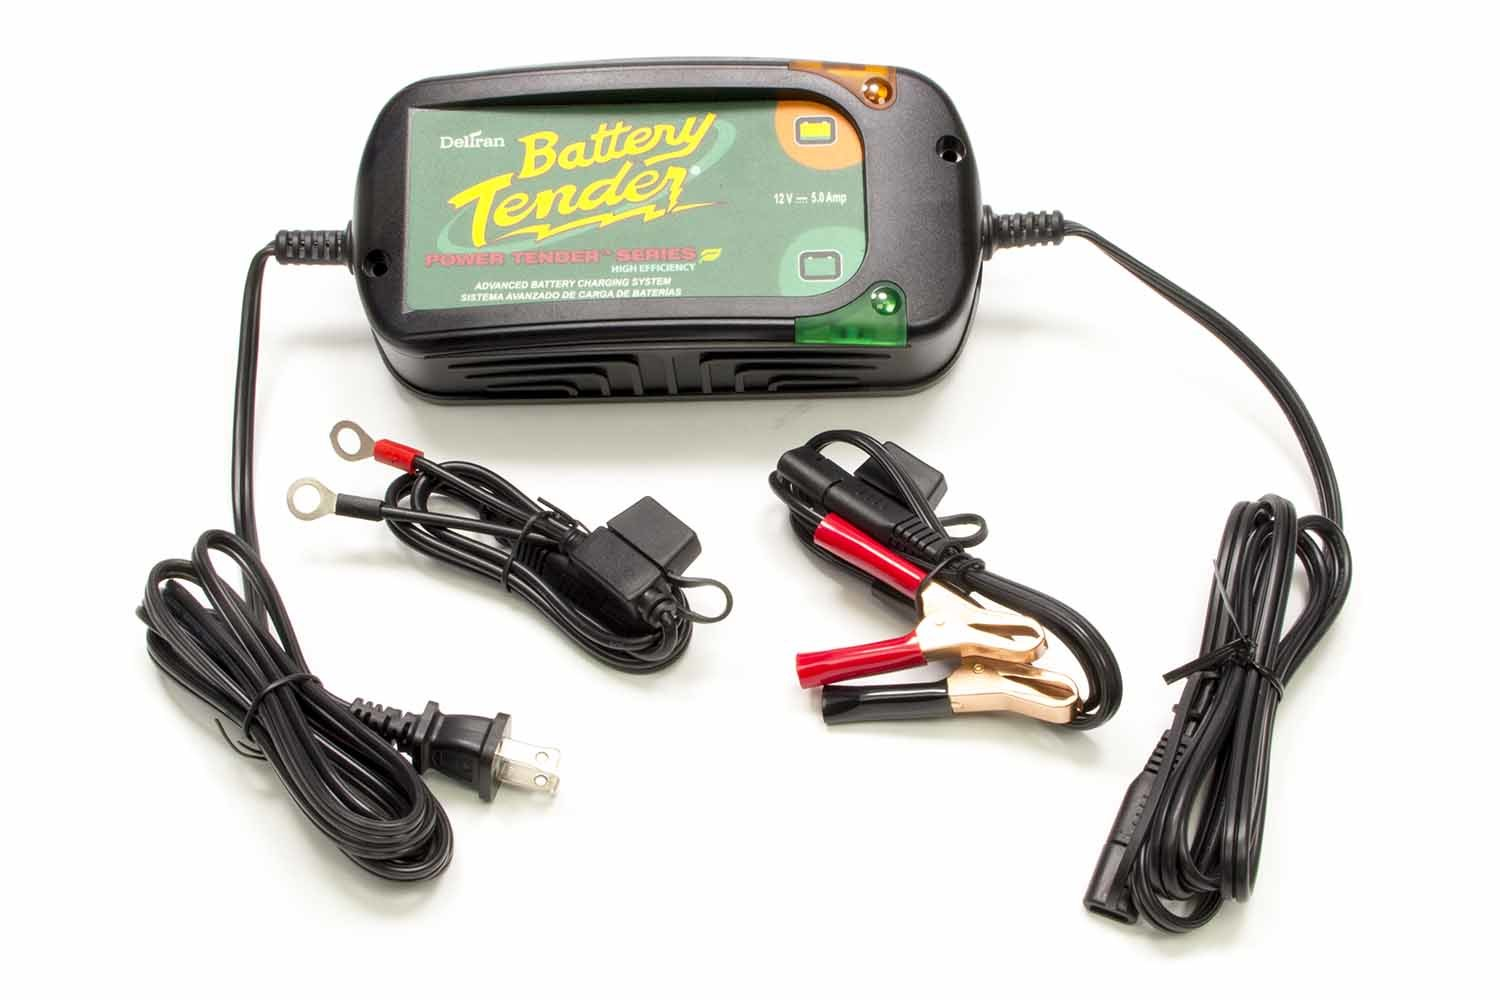 Battery Tender 022-0186G-DL-WH Battery Charger, Battery Tender Power Tender Plus High Efficiency, 12V, 5 amp, 4 Step Charging Program, Quick Connect Harness, Each